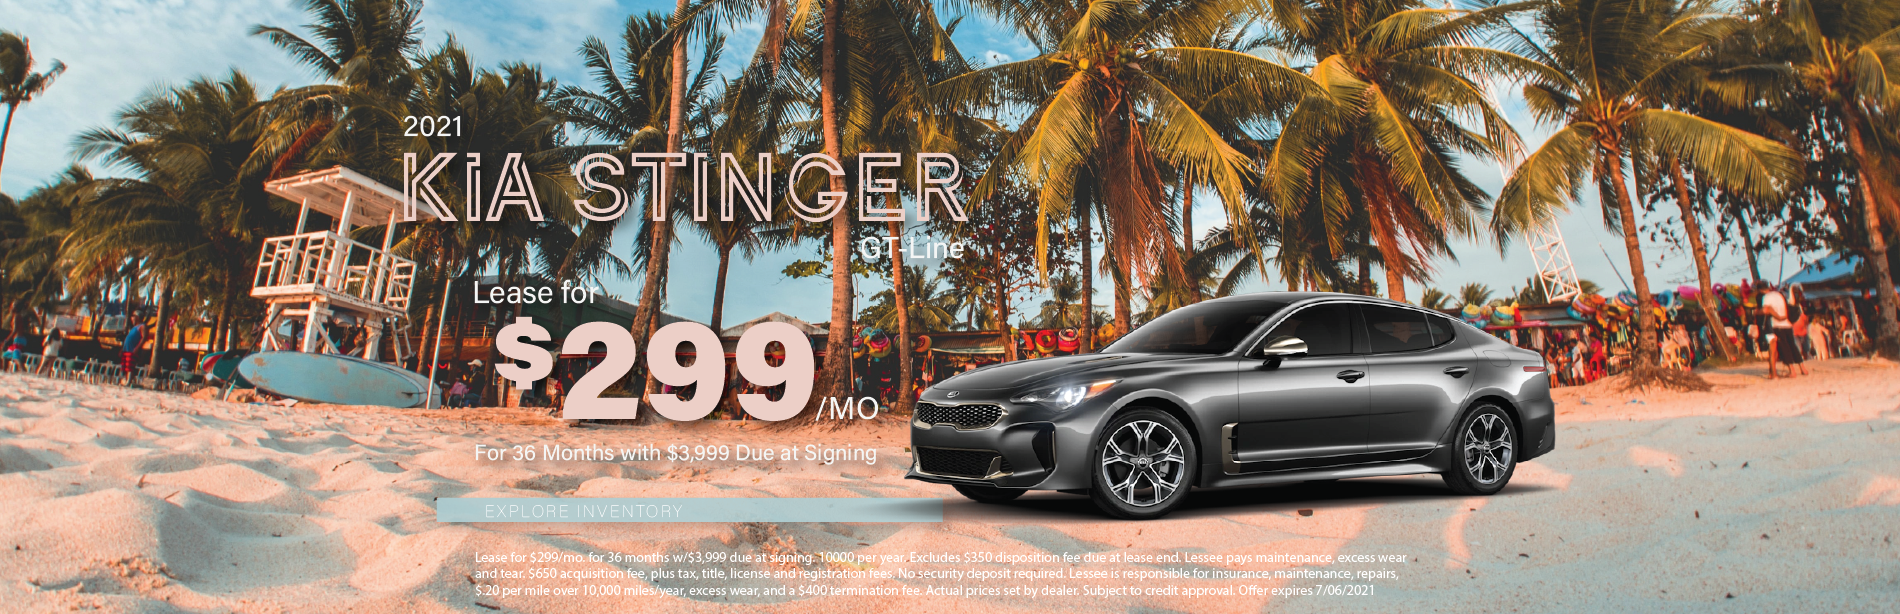 Lafontaine Kia Stinger – May